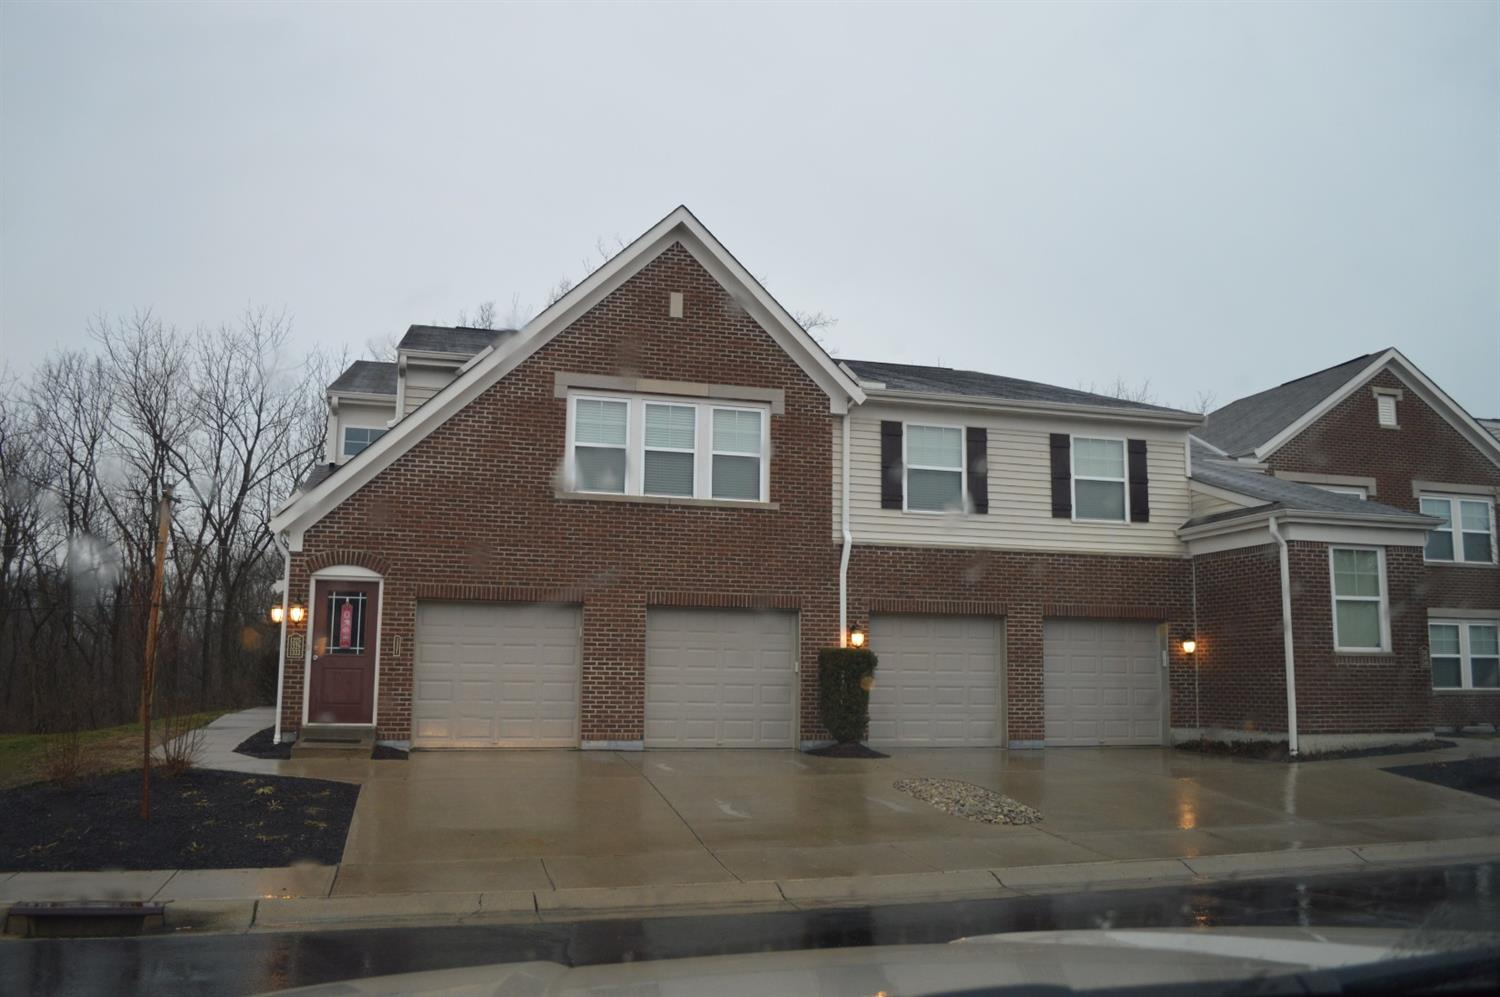 Property for sale at 1337 Double Eagle Court, Turtle Creek Twp,  Ohio 45036